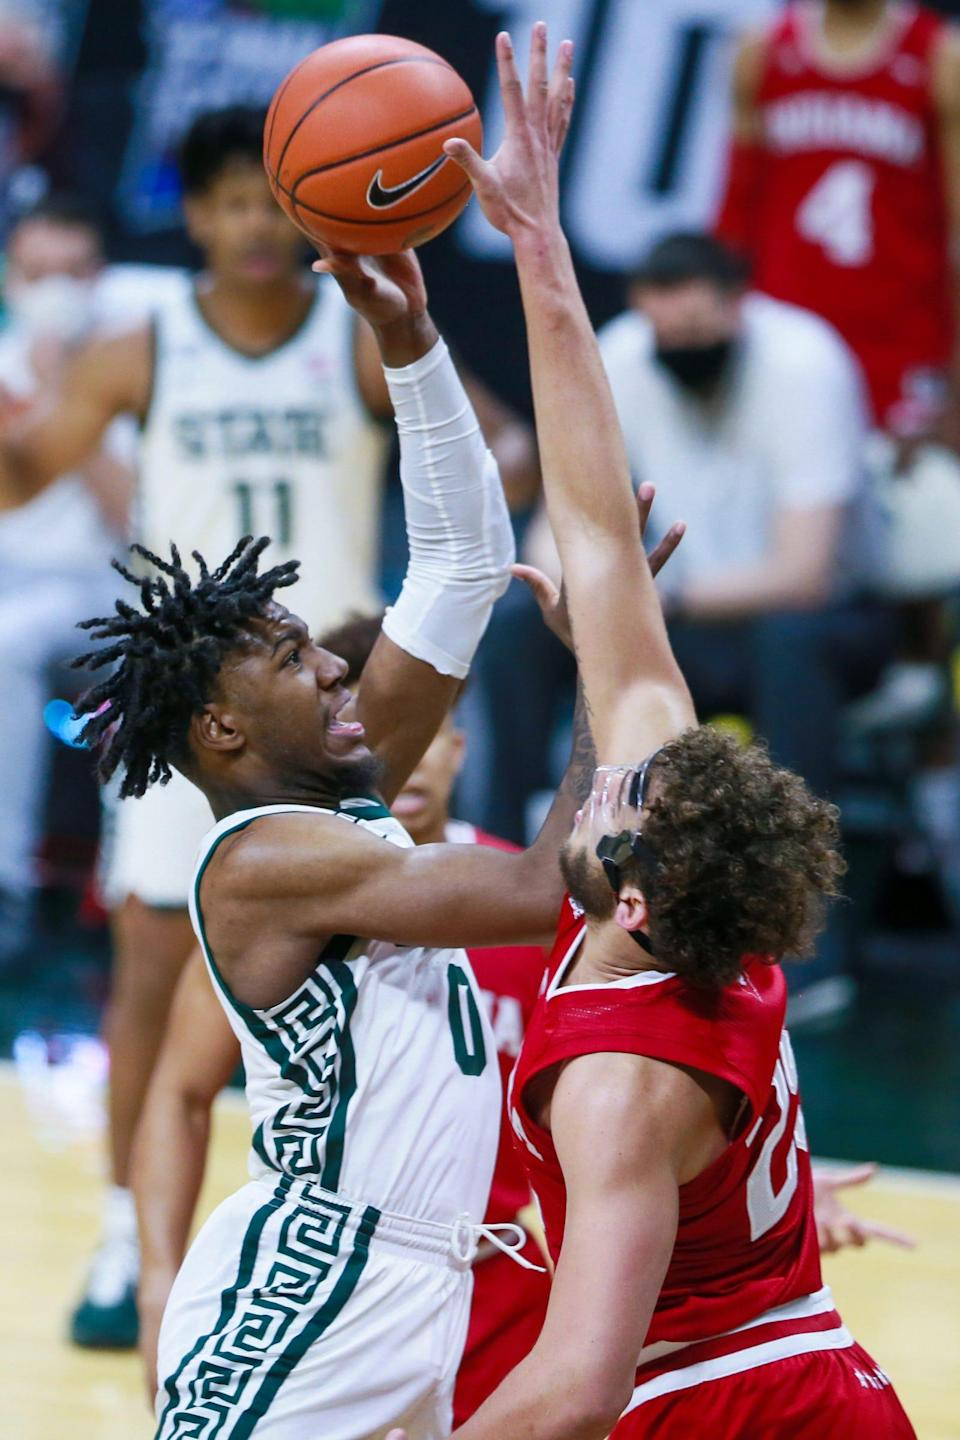 Michigan State forward Aaron Henry (0) is blocked by Indiana forward Race Thompson (25) in the first half against Indiana on Tuesday, March 2, 2021, in East Lansing.